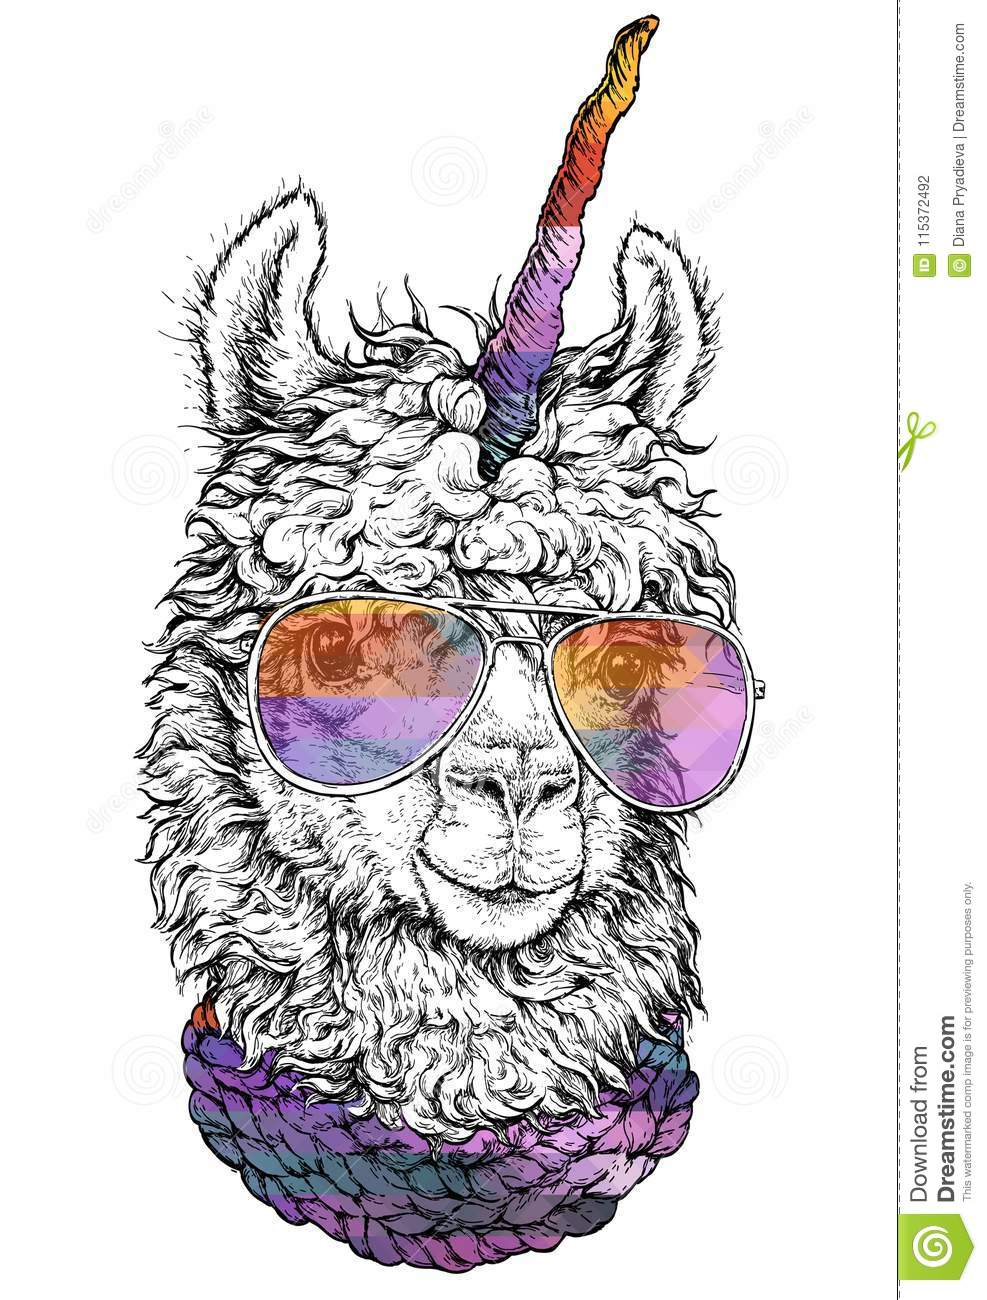 Lama Llamacorn In Eyeglasses Hipster Style Drawing Isolated On